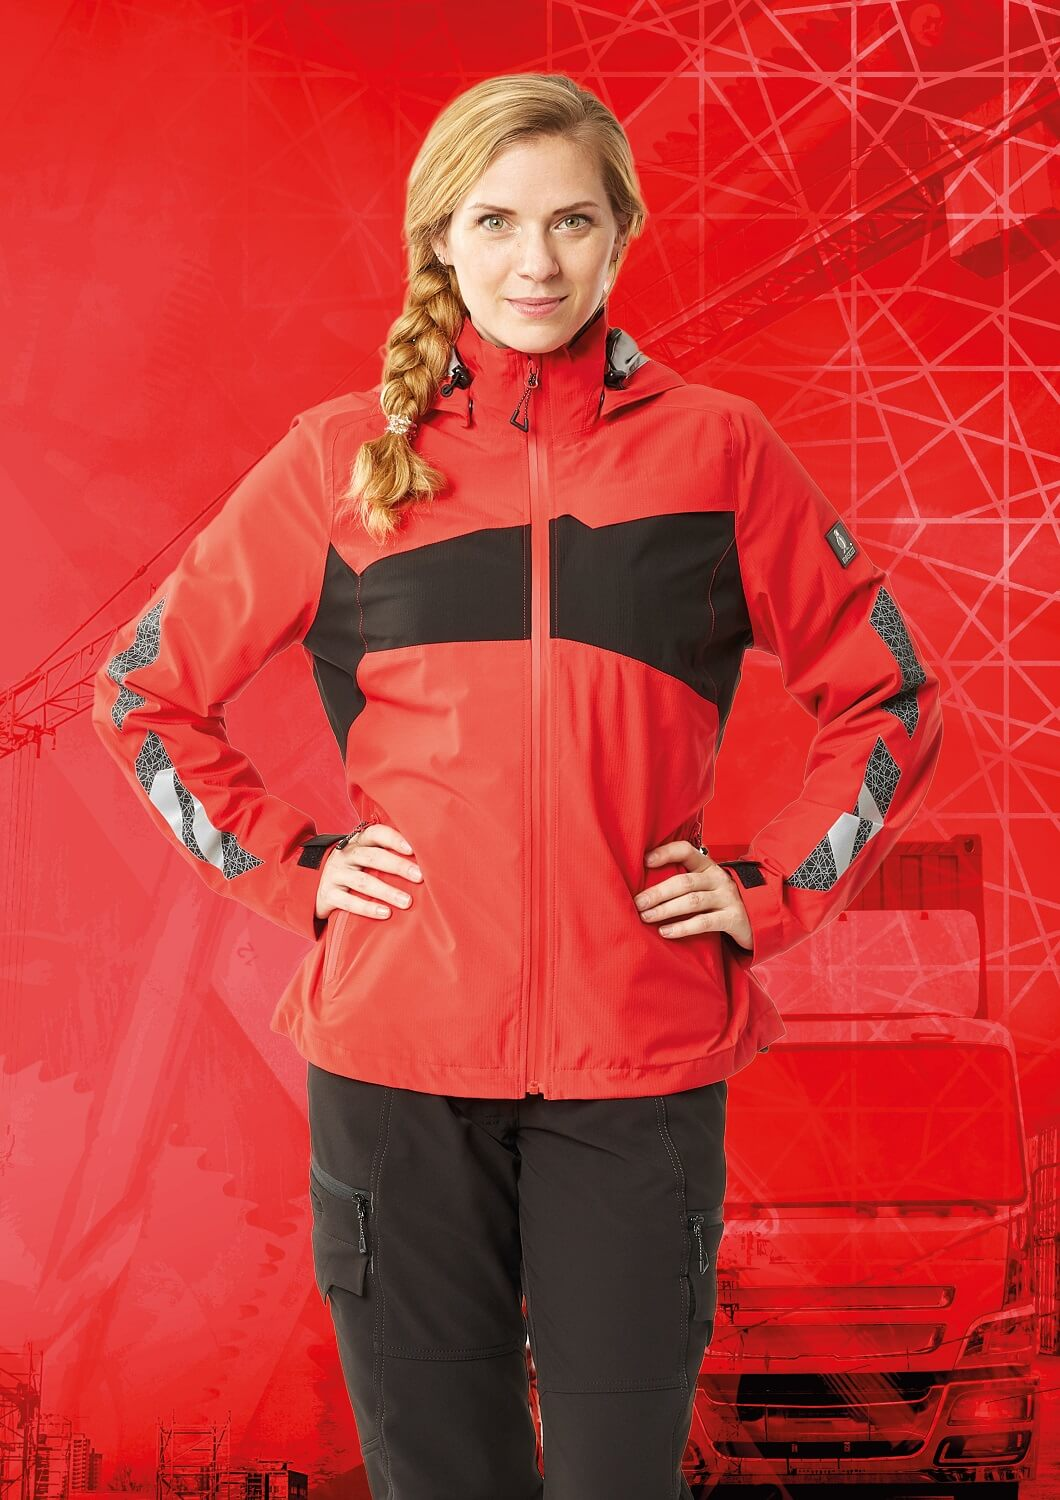 Pants & Jacket for women  - Red - MASCOT® ACCELERATE